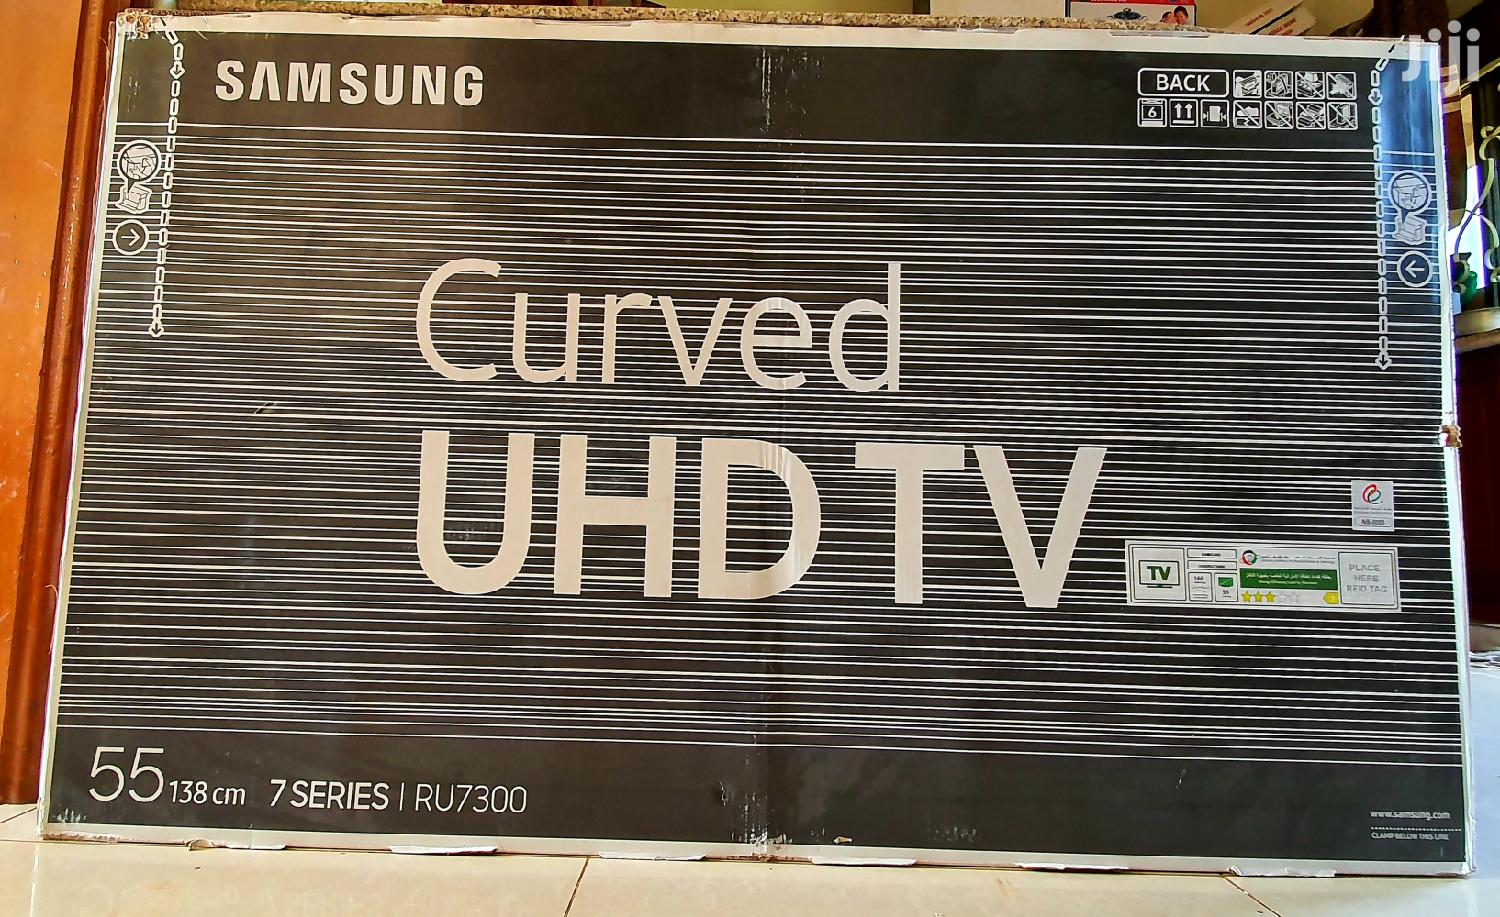 Samsung Smart UHD 4k TV 55 Inches